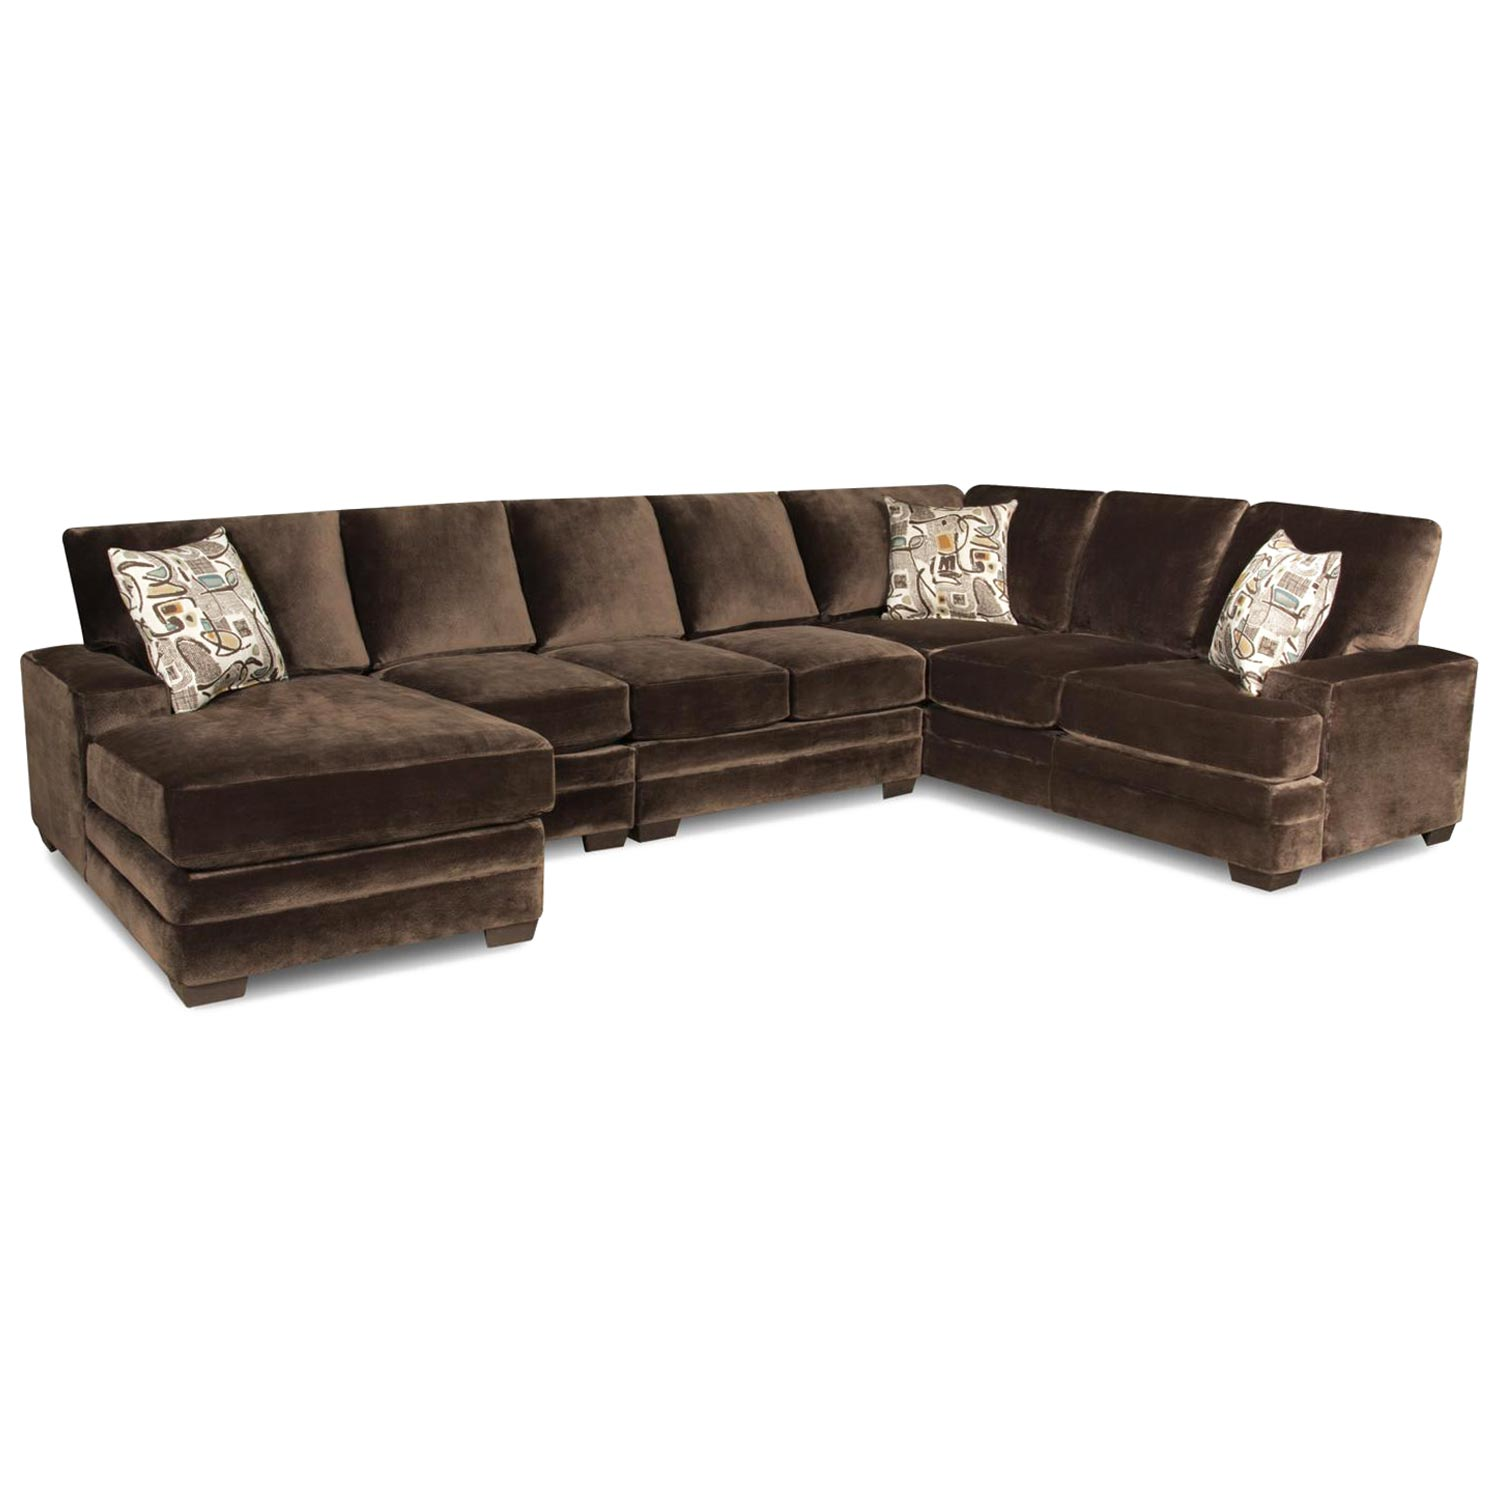 barstow chaise sectional sofa sharpei chocolate fabric. Black Bedroom Furniture Sets. Home Design Ideas